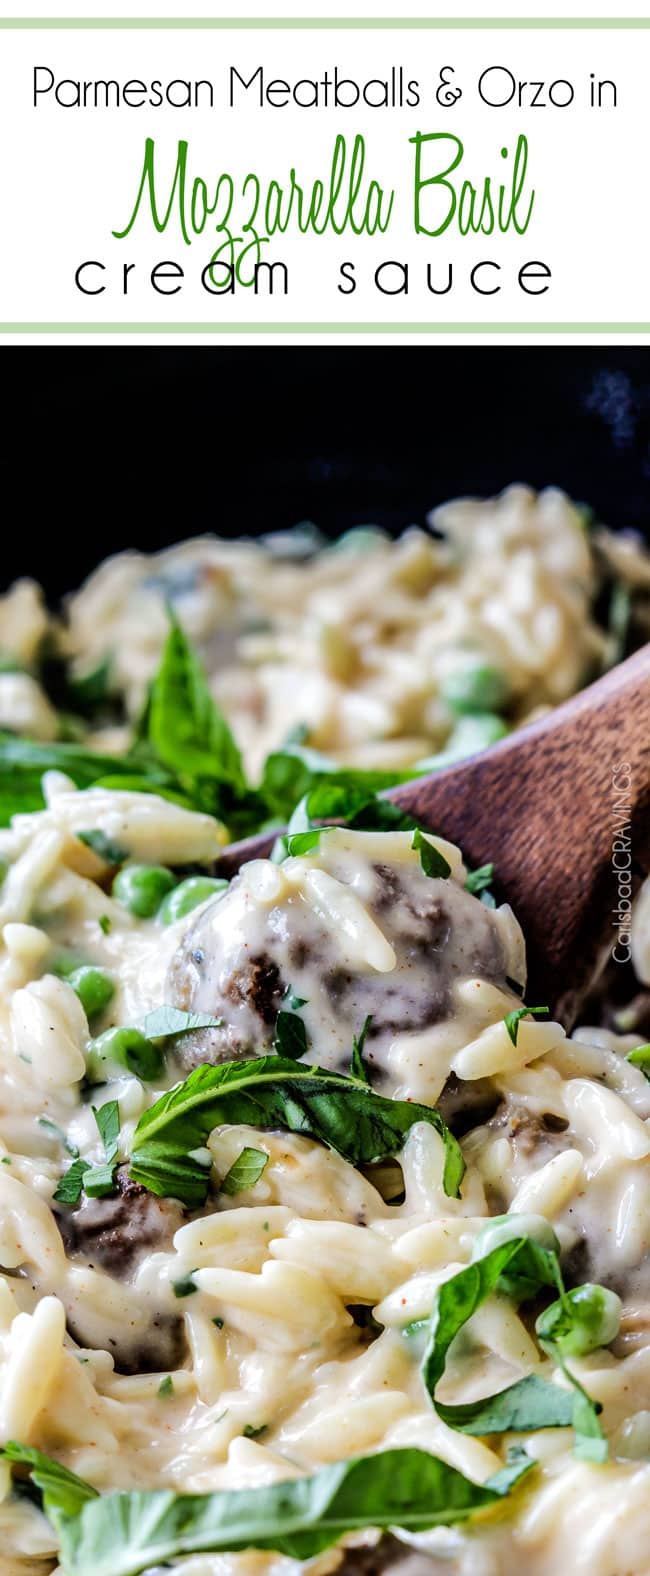 Parmesan Meatballs in a cream sauce with orzo and basil being served with a wood spoon.